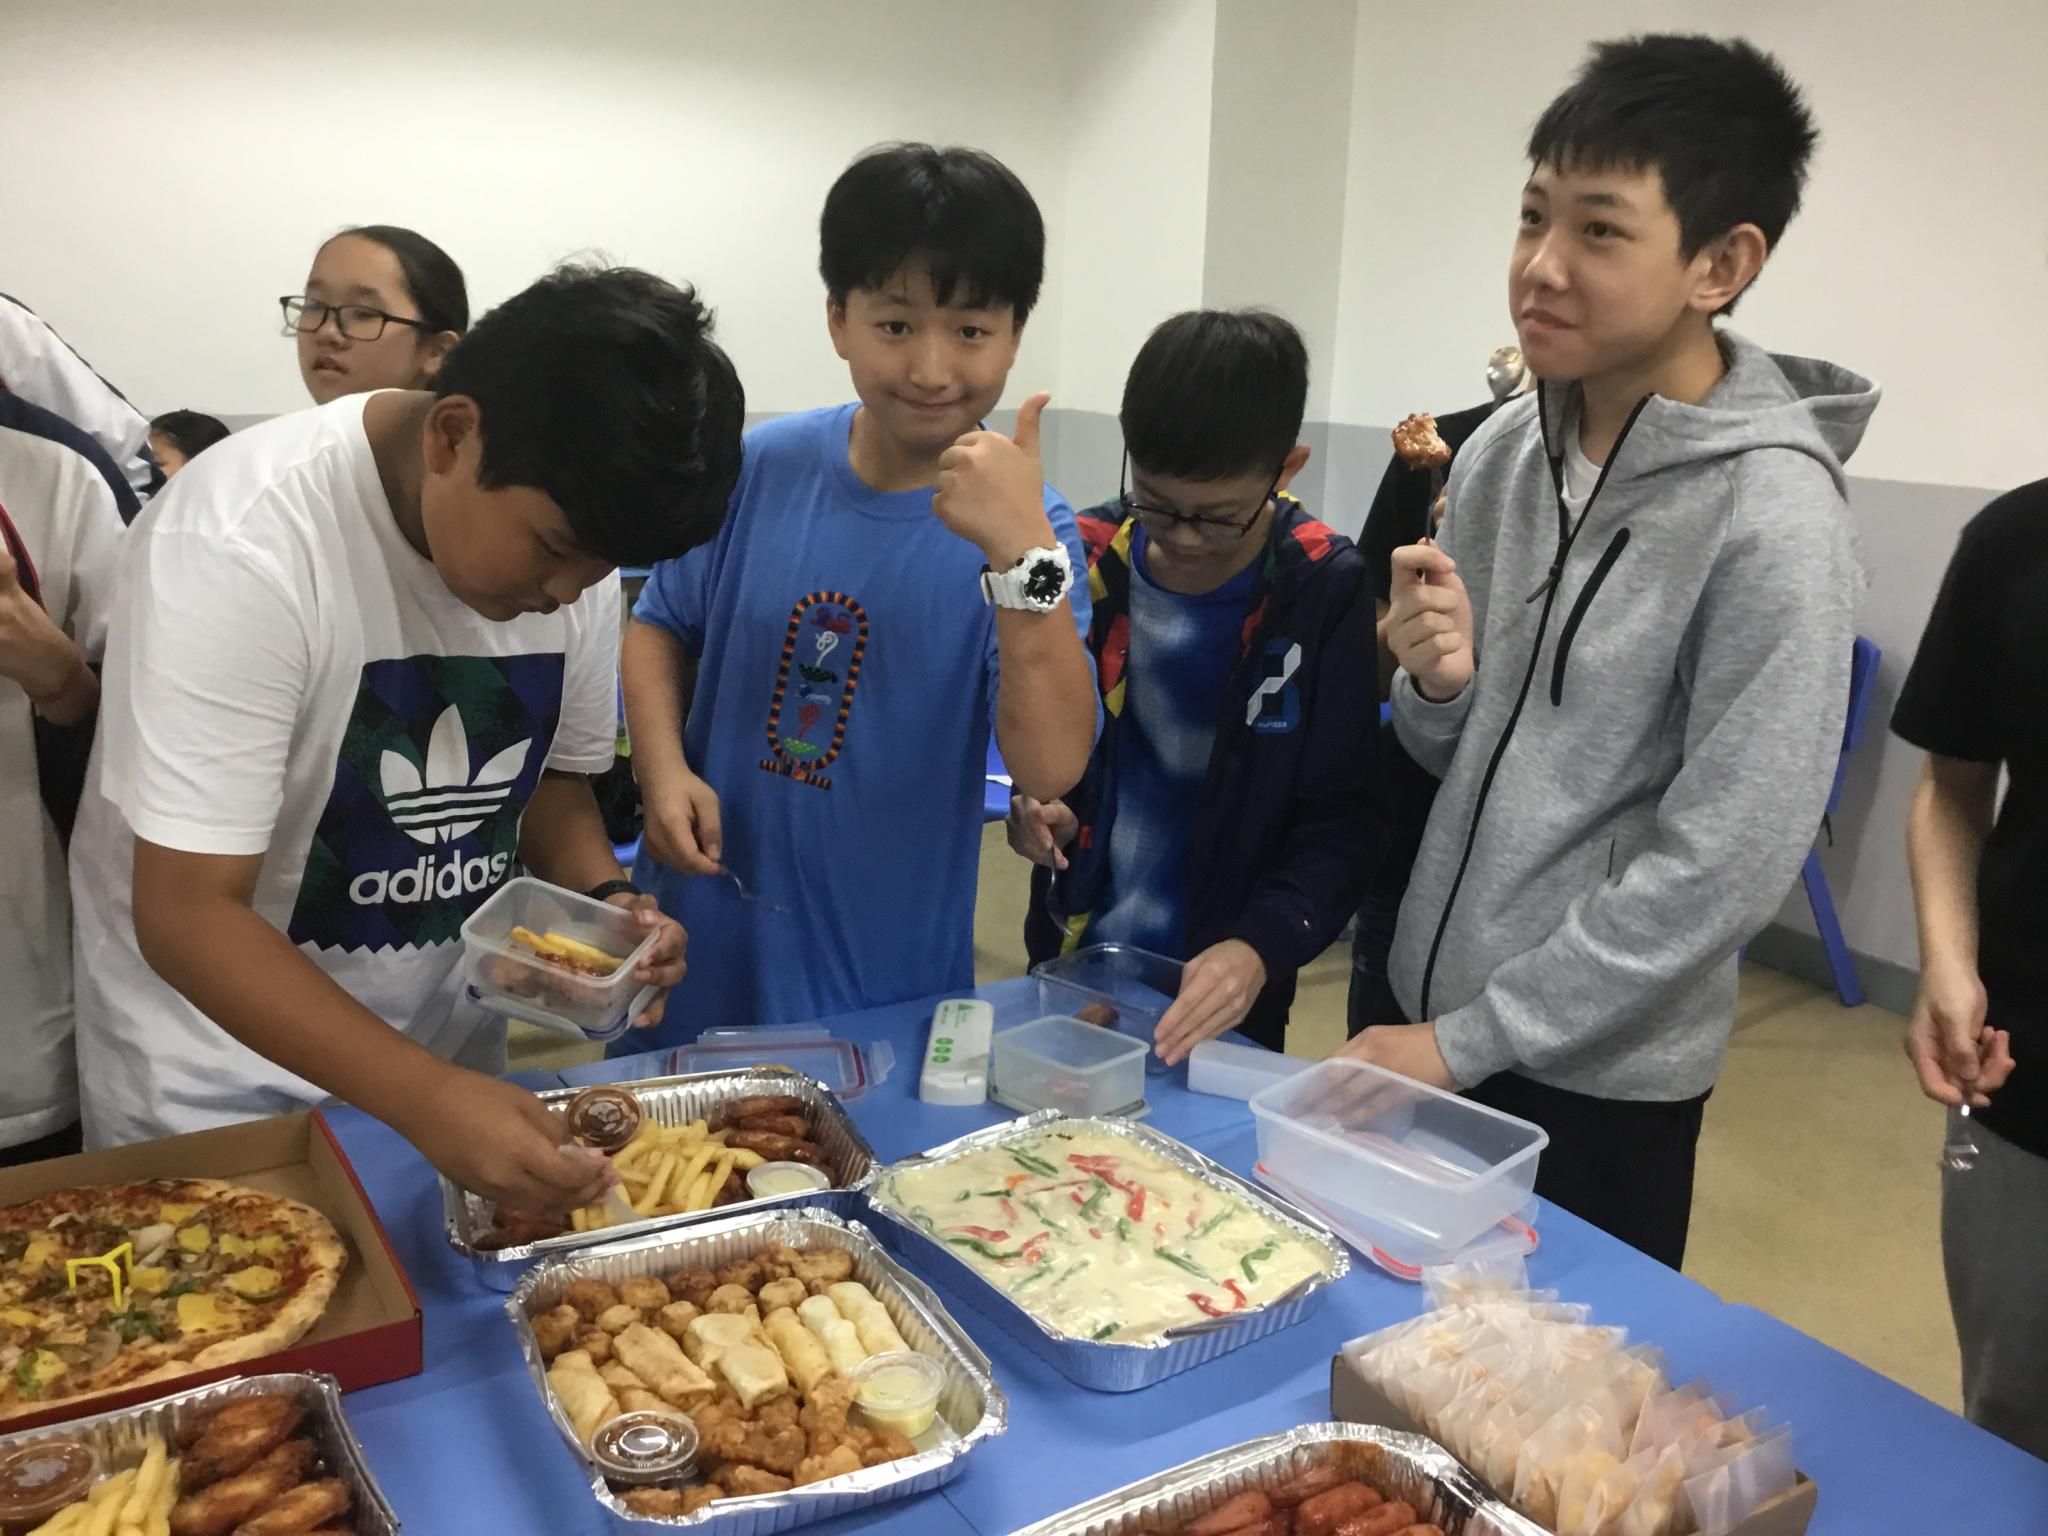 Students are sharing their food happily during the Christmas party. They all bring their own reusable utensils.